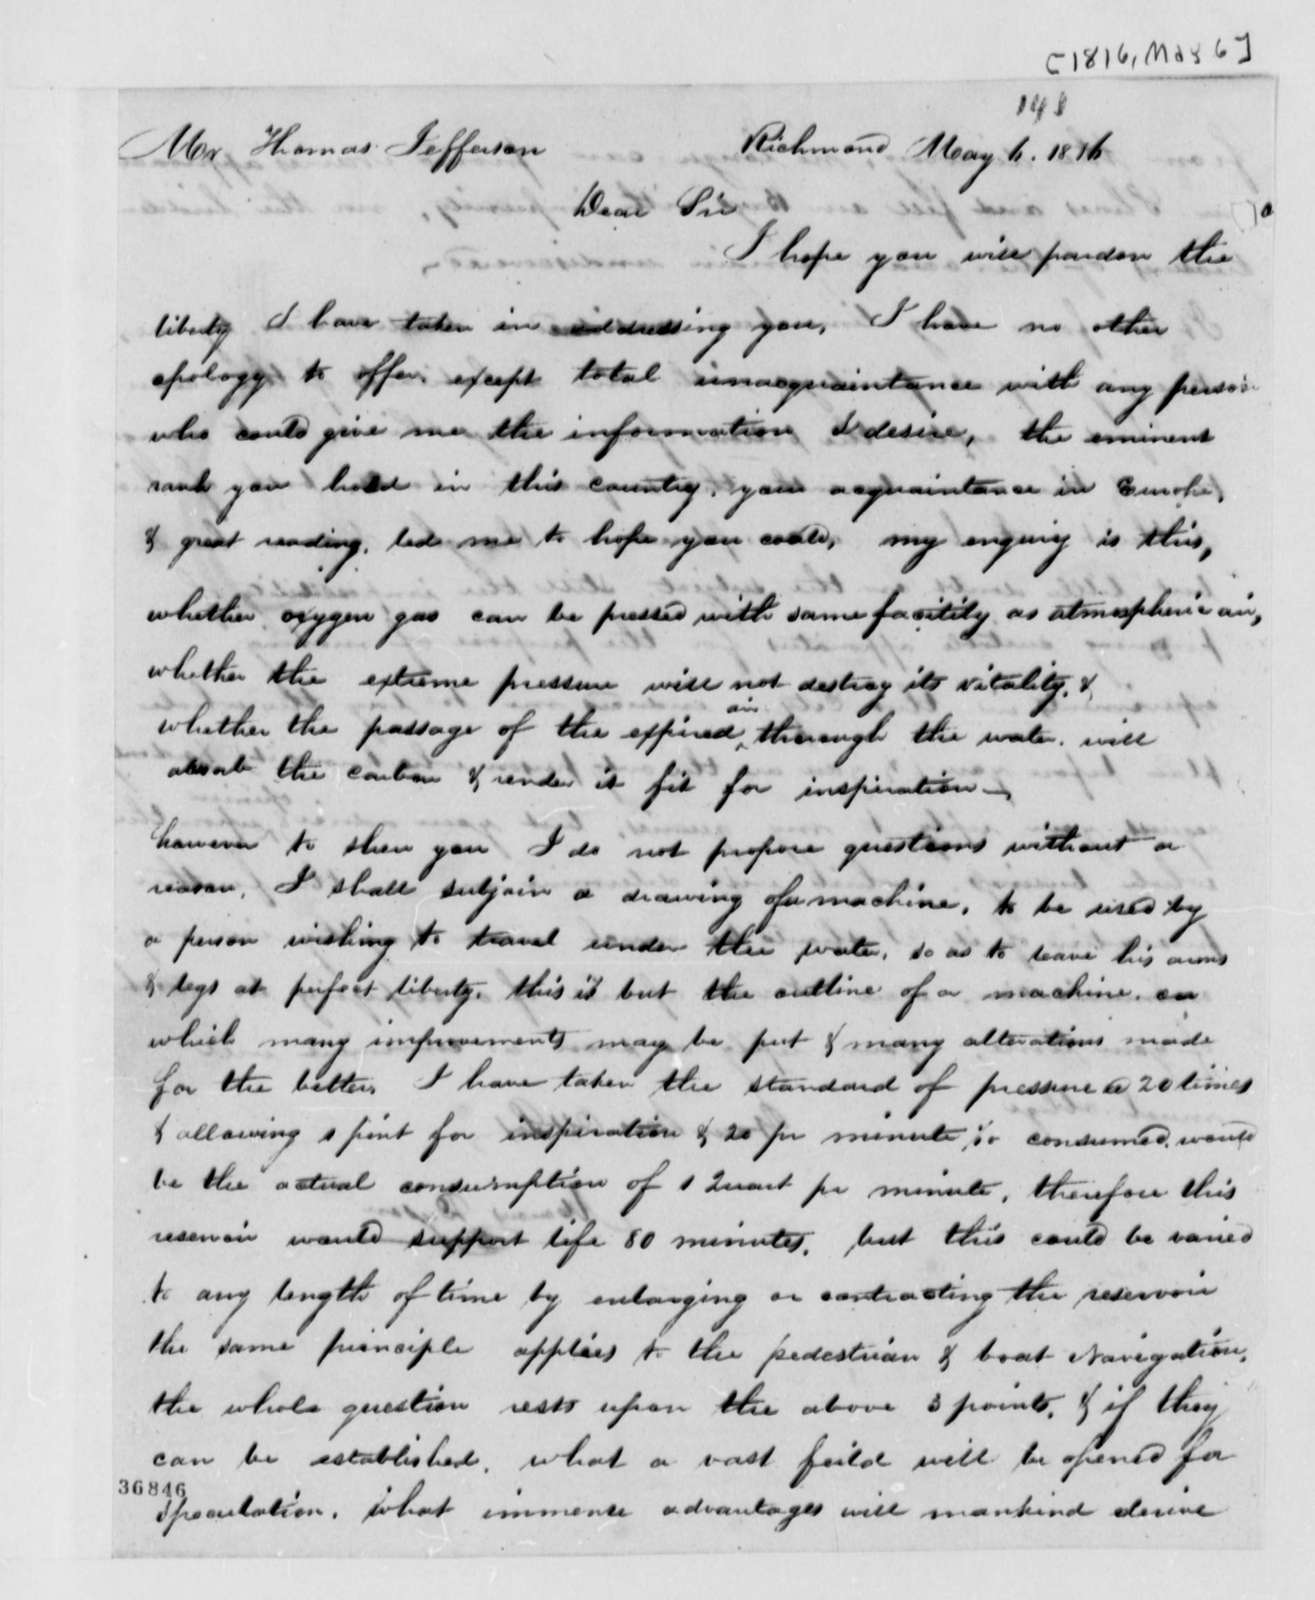 Marcus Dyson to Thomas Jefferson, May 6, 1816, with Explanation of Underwater Breathing Apparatus